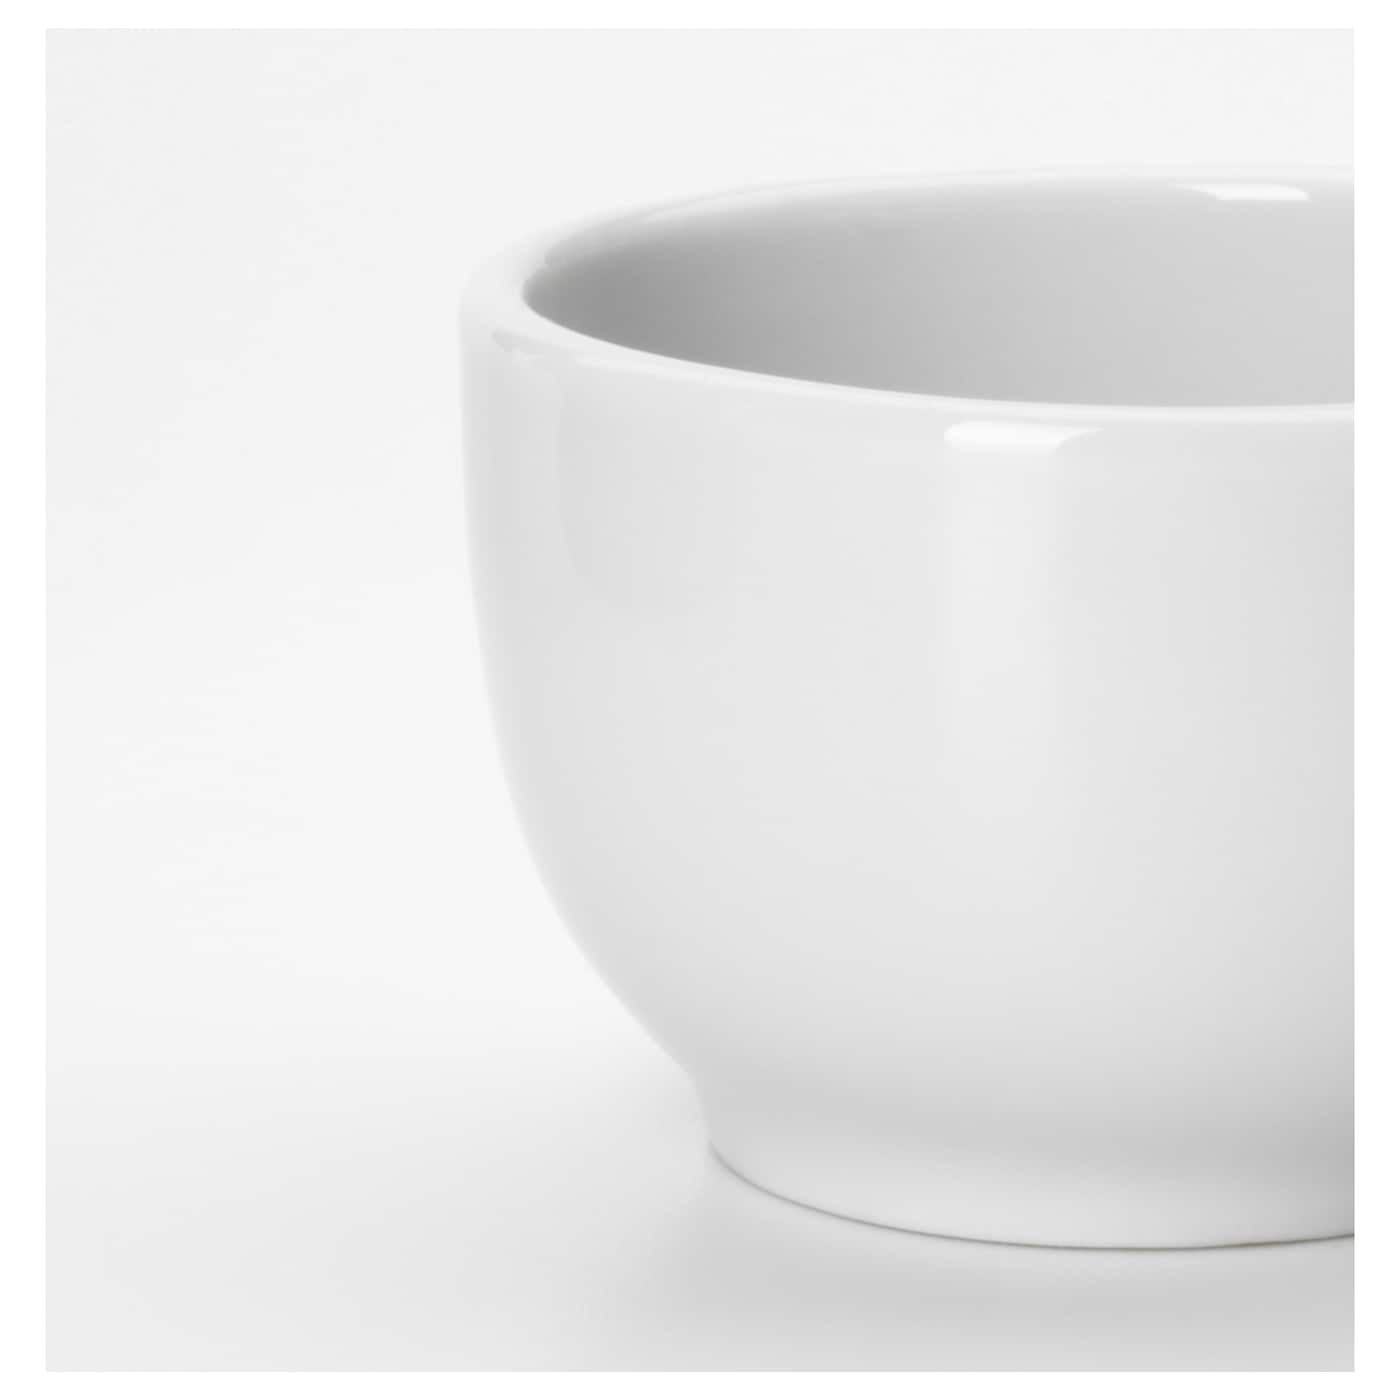 IKEA IKEA 365+ bowl/egg cup Practical bowl that you can also use as an egg cup.